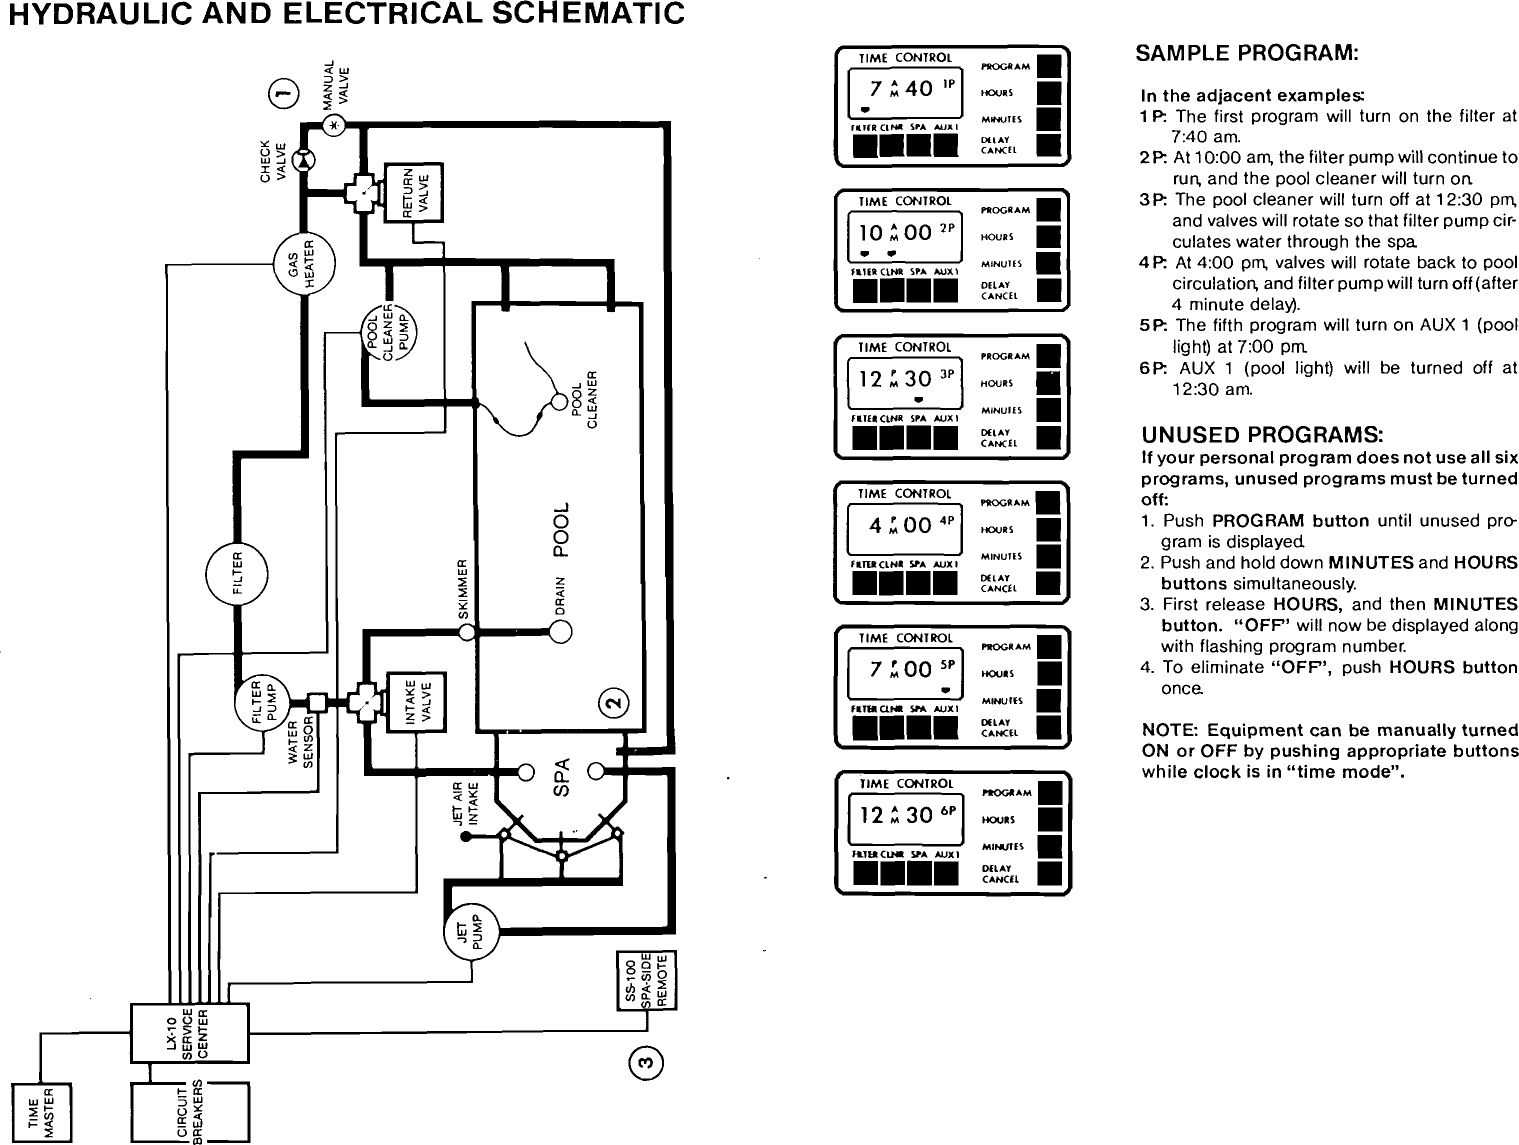 fuse box diagram for 1998 honda cr v